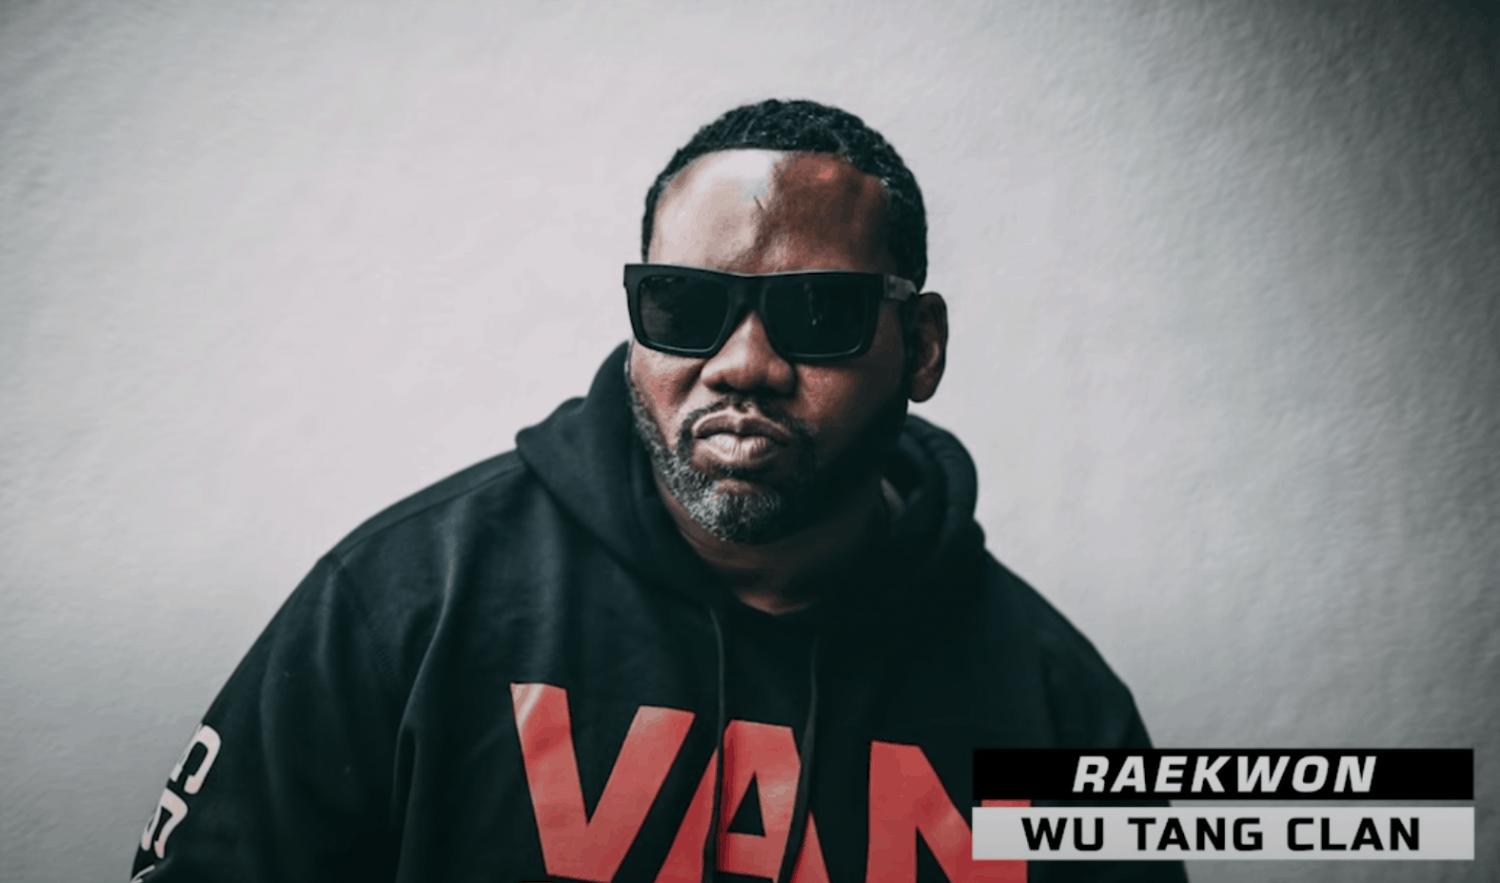 Raekwon On The Impact Hip Hop Had, New Generation Of Artists + More | The Dr. Greenthumb Podcast